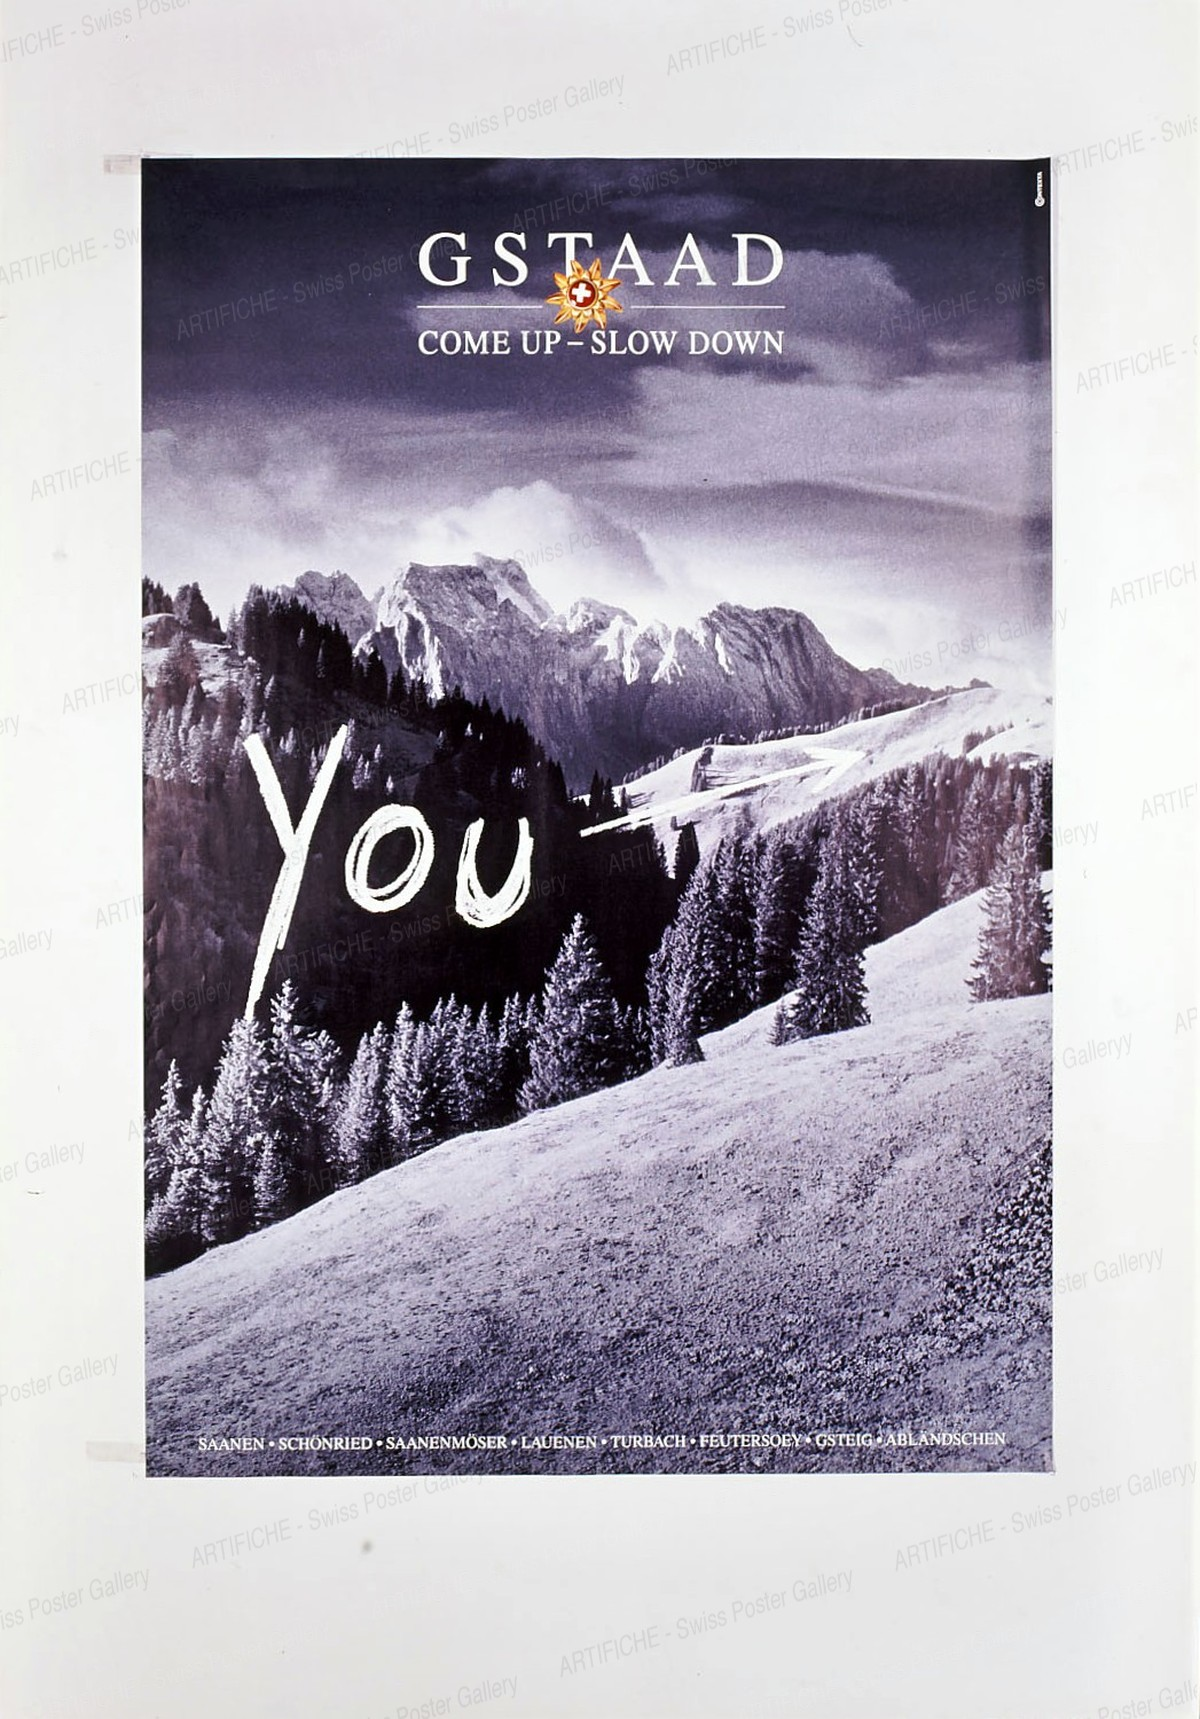 GSTAAD – YOU – come up – slow down, Contexta